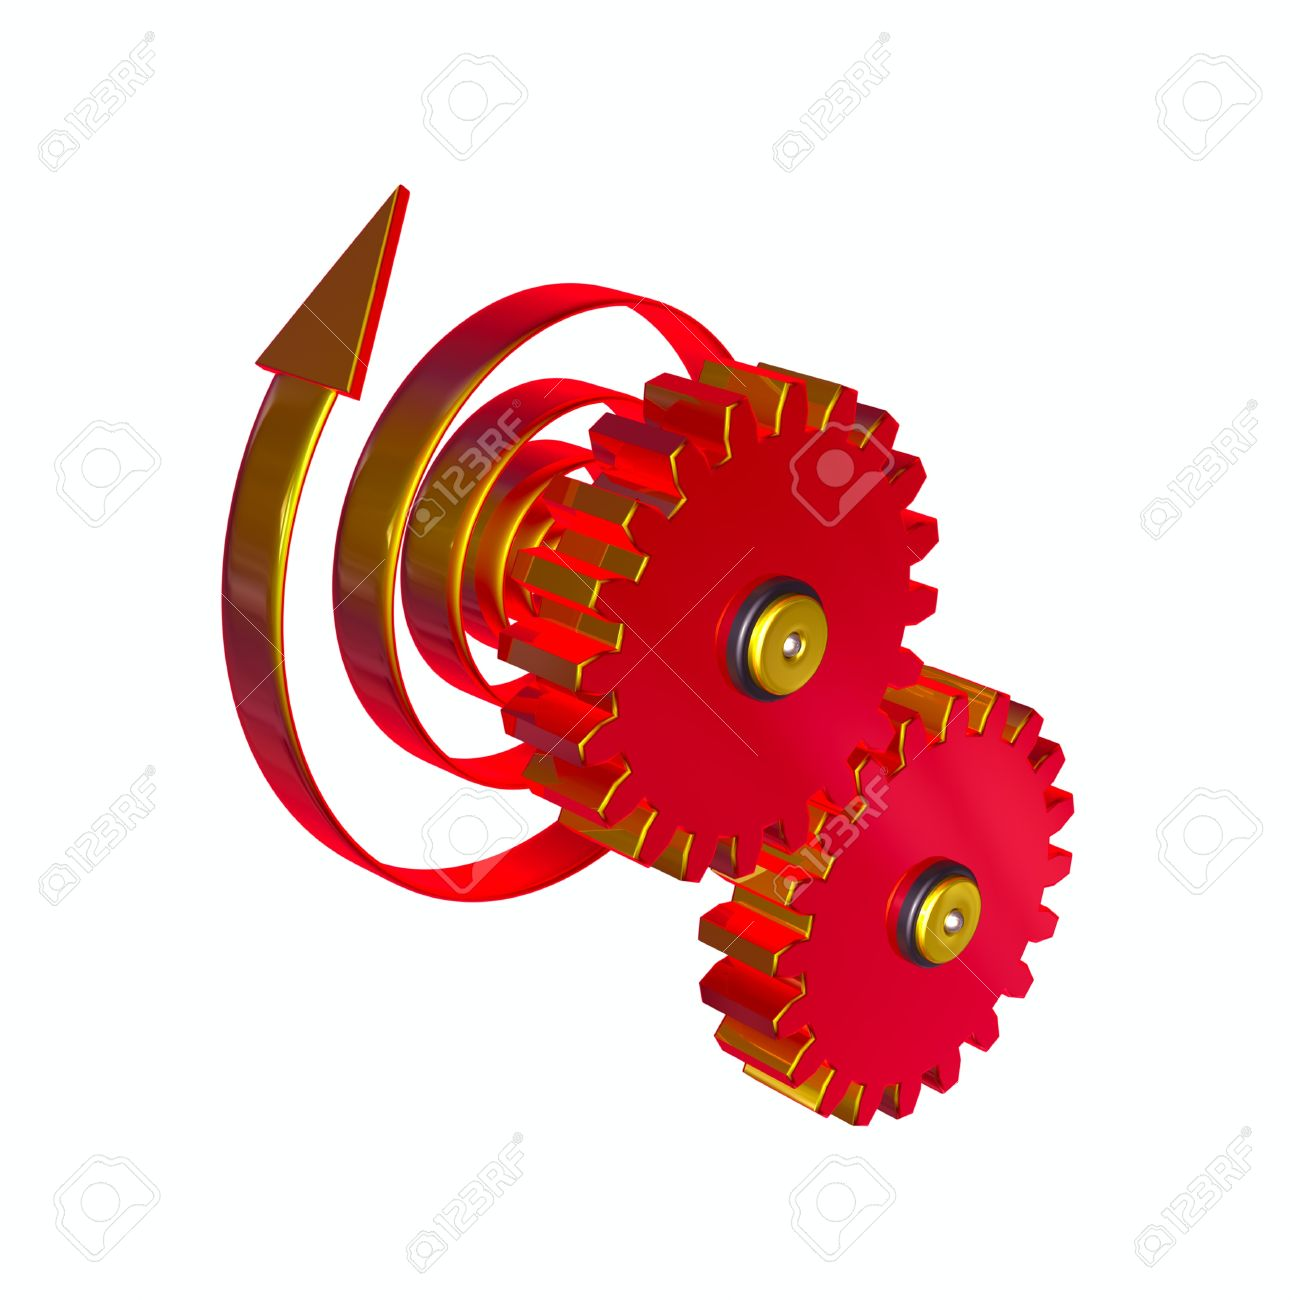 3d Illustration, Two Gear Wheels Rotate By Means Of A Mainspring.